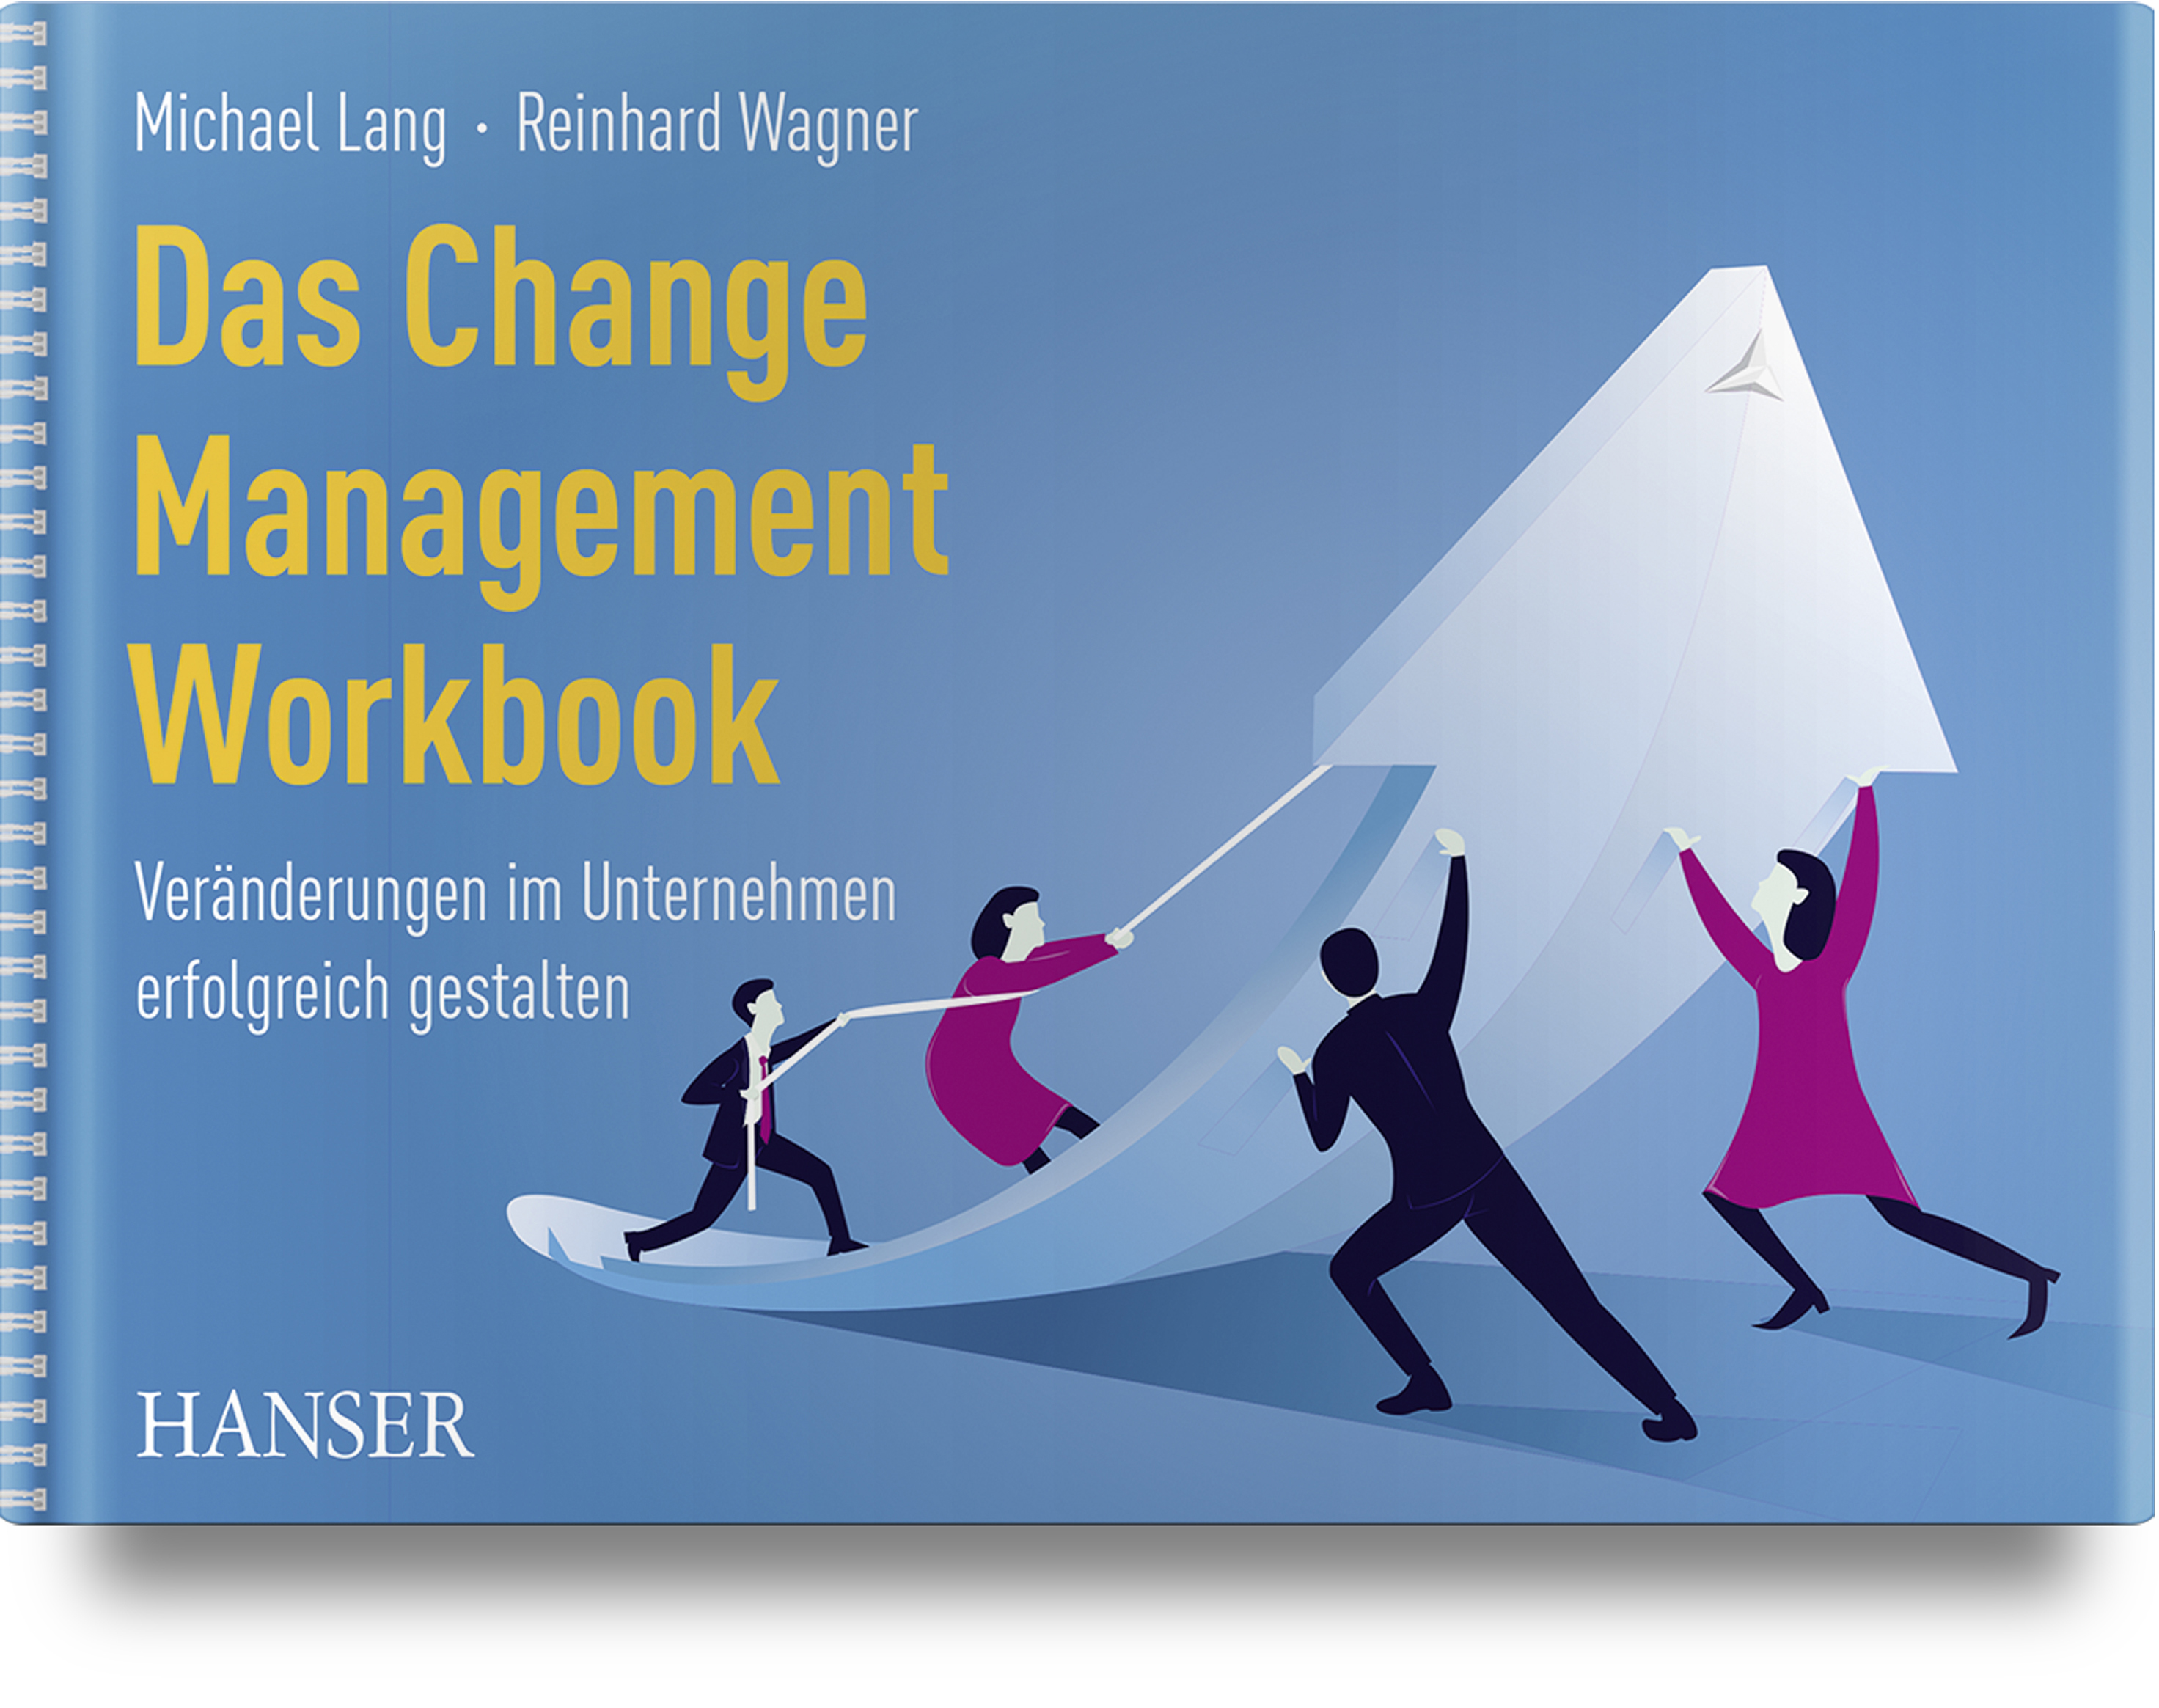 Das Change Management Workbook, 978-3-446-46284-7